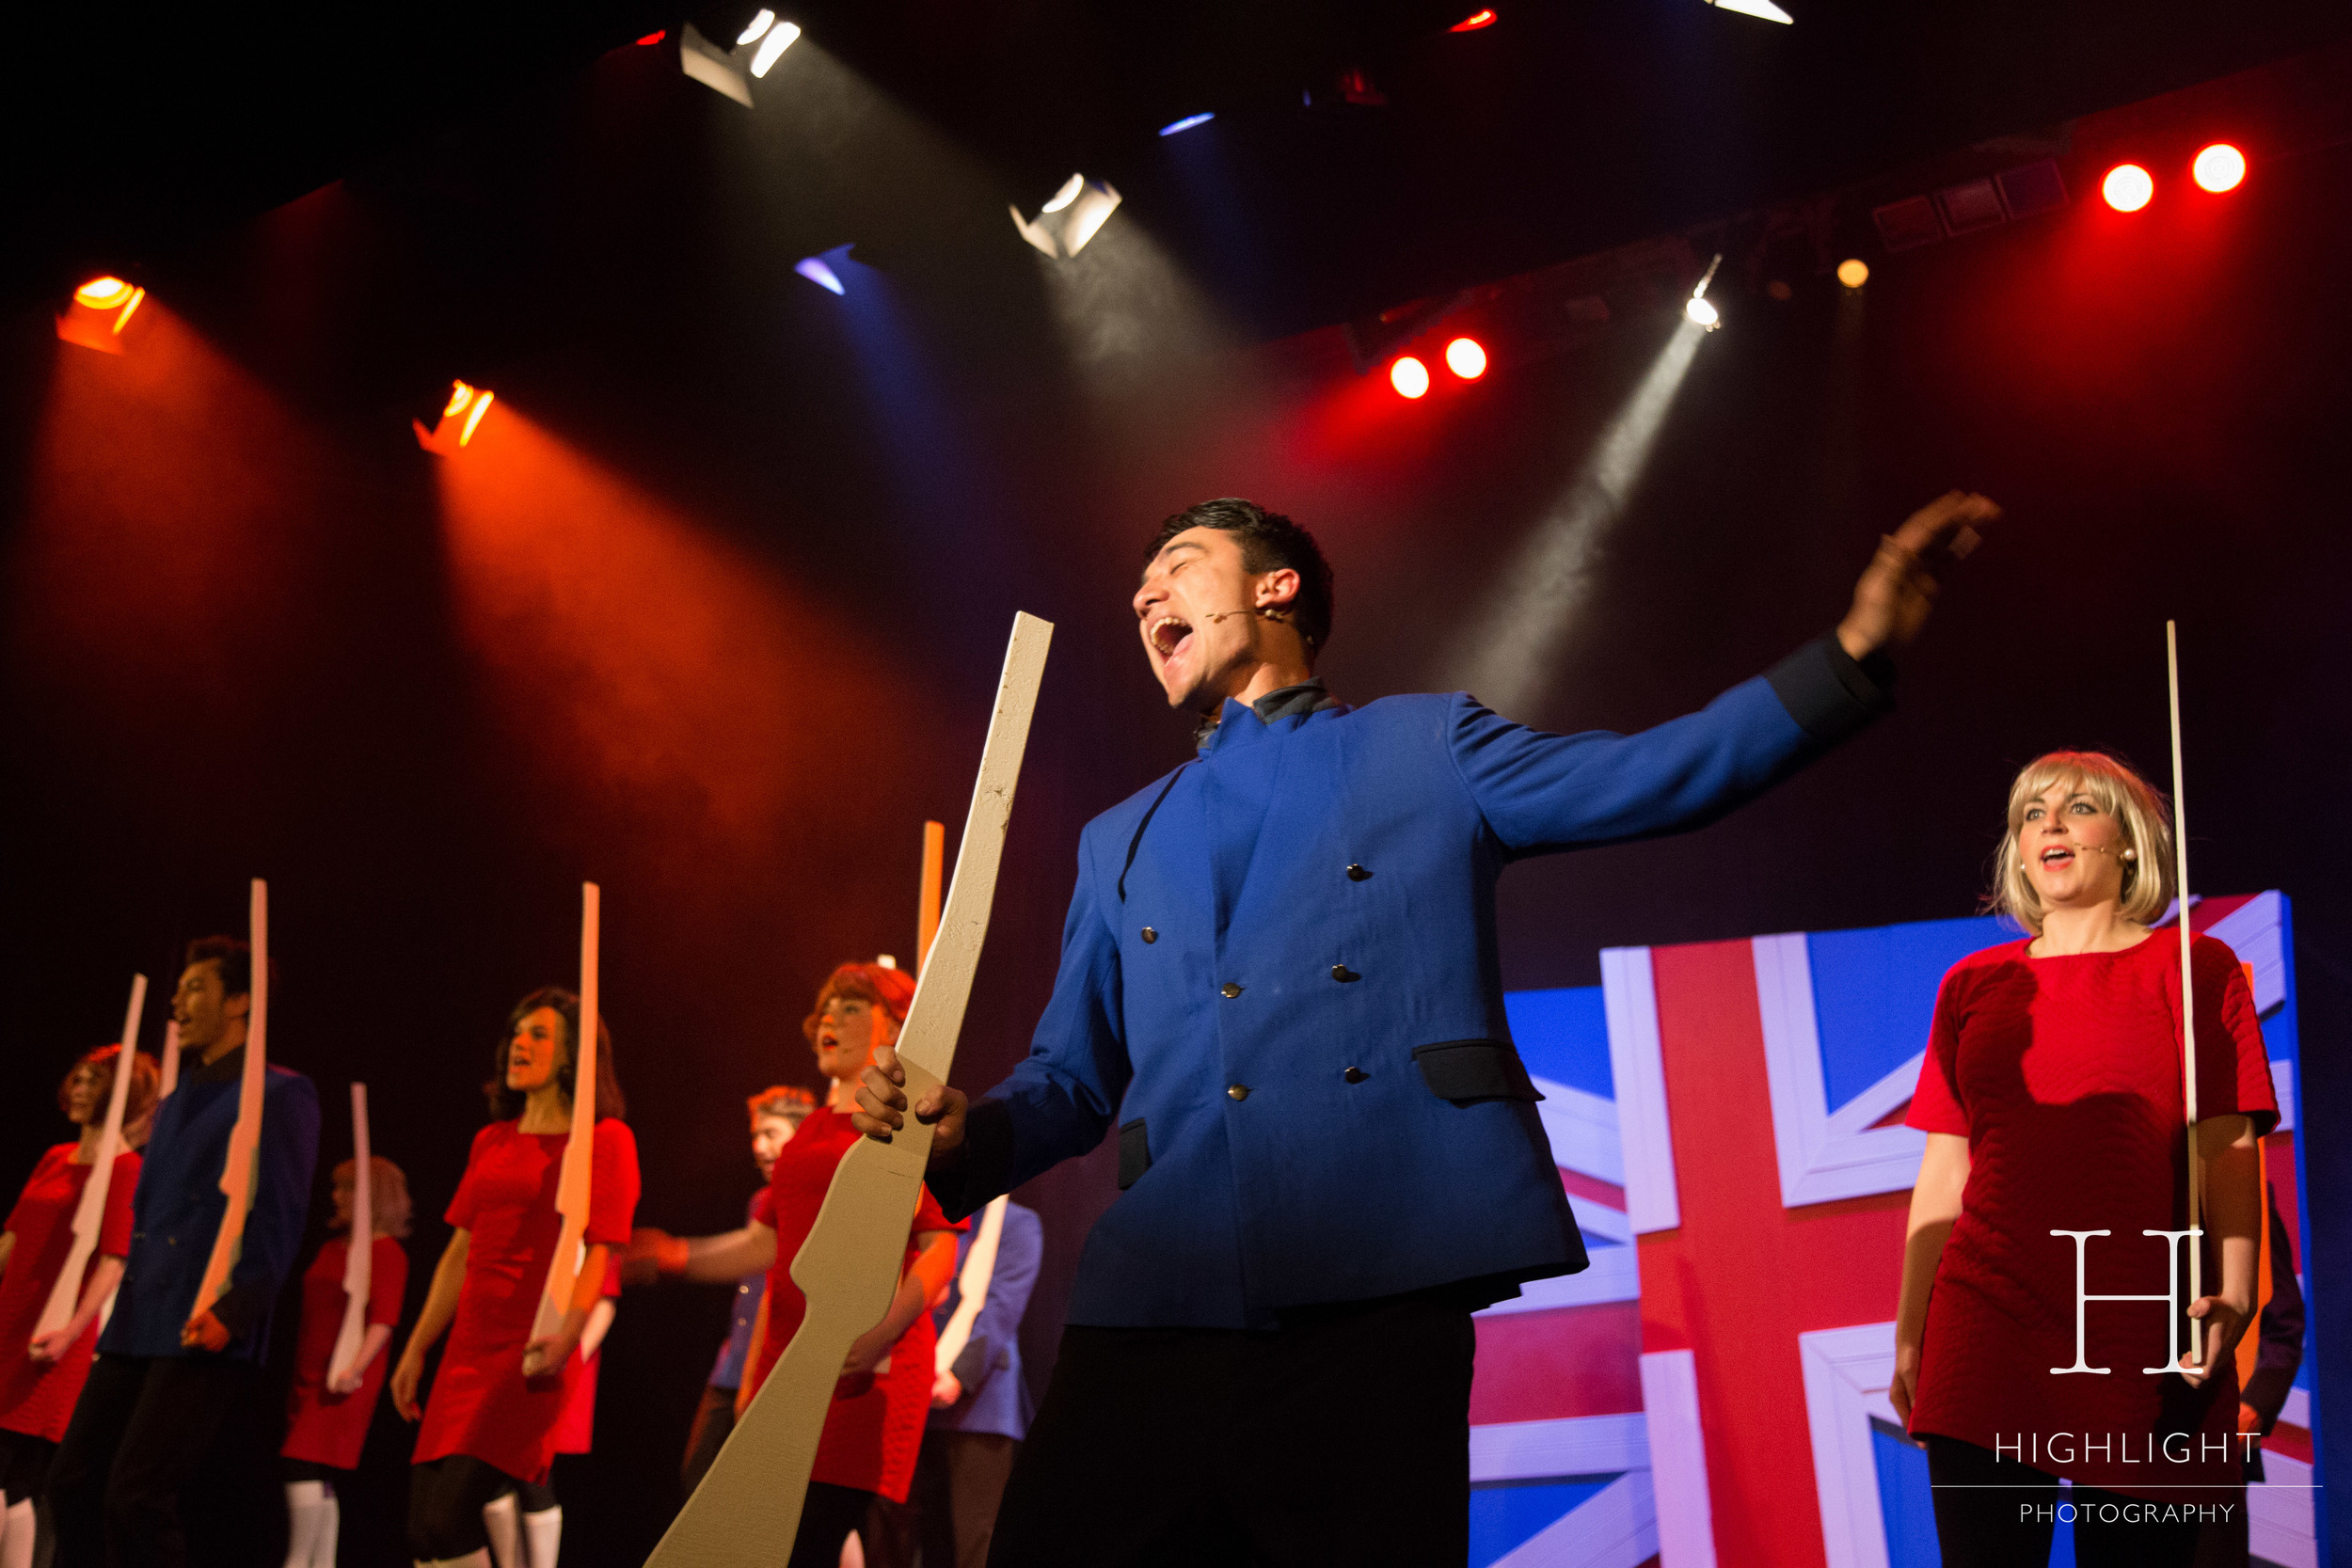 beatles_british_invasion_stage_show_highlight_photography3